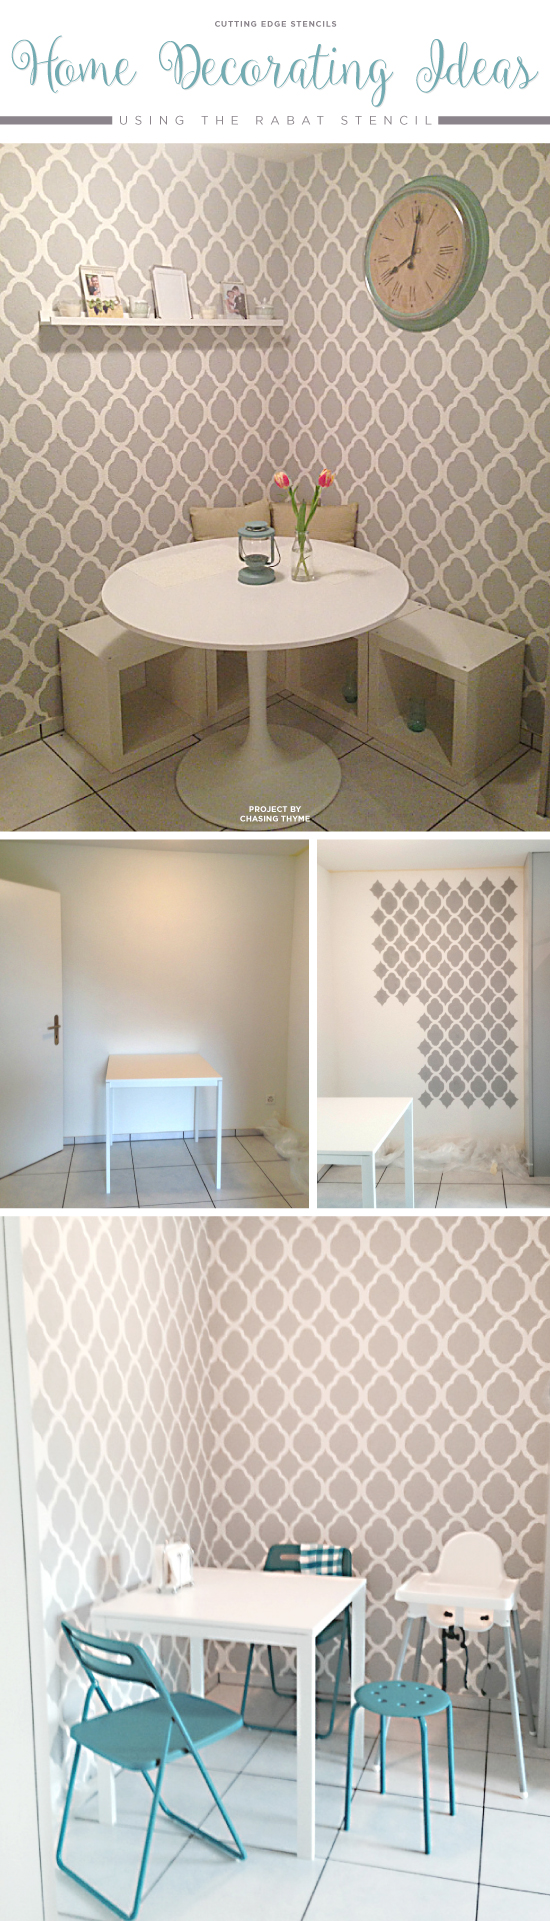 A DIY stenciled accent wall using the Rabat Allover Stencil. http://www.cuttingedgestencils.com/moroccan-stencil-pattern-3.html